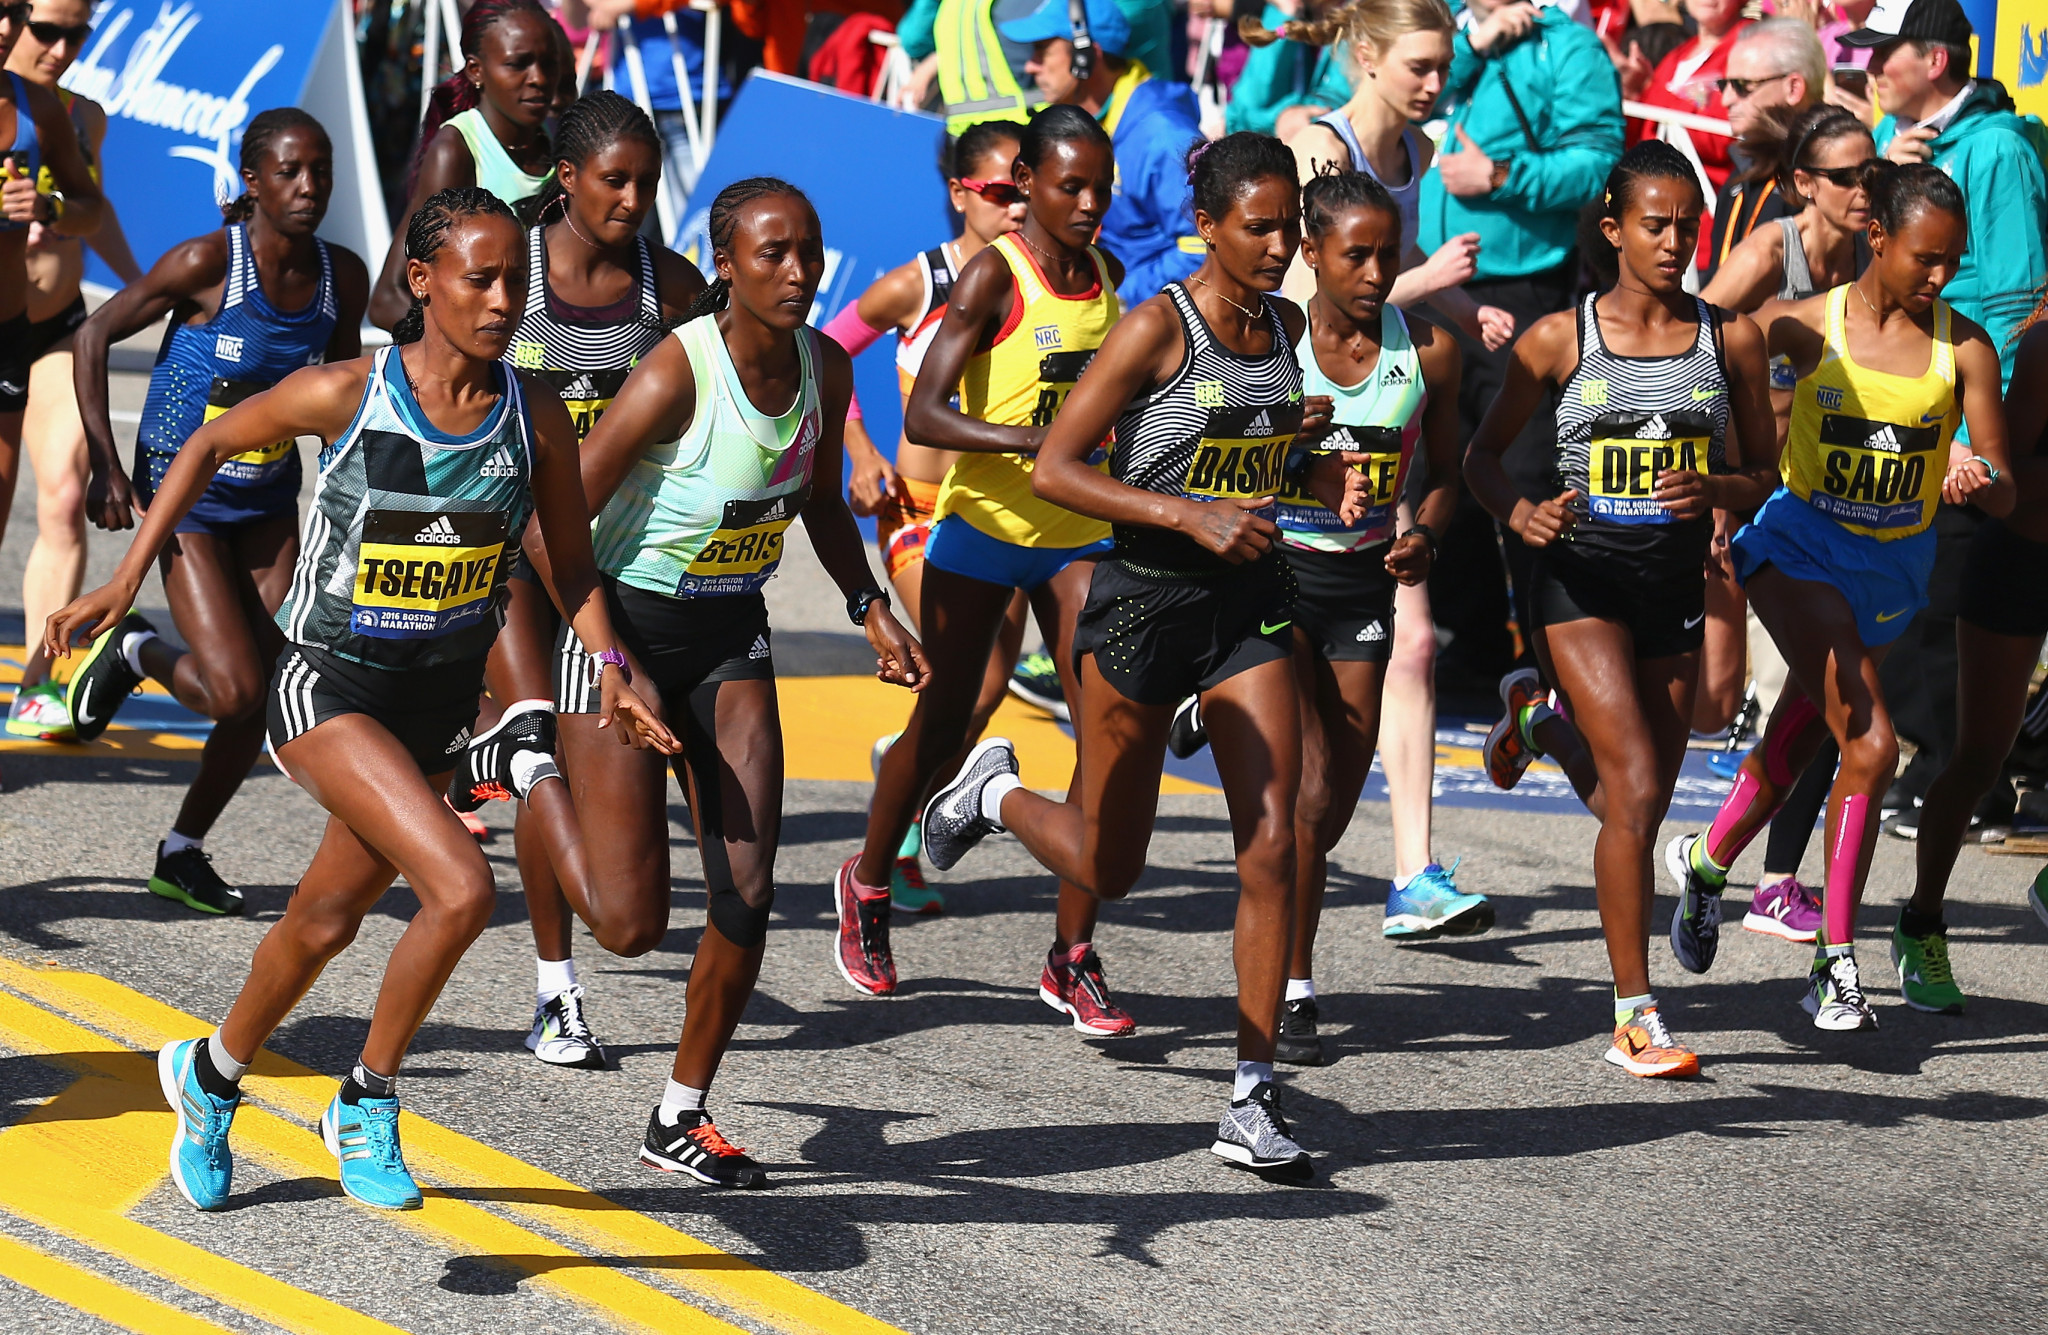 The Boston Marathon organisers have sent a message of support during the pandemic ©Getty Images